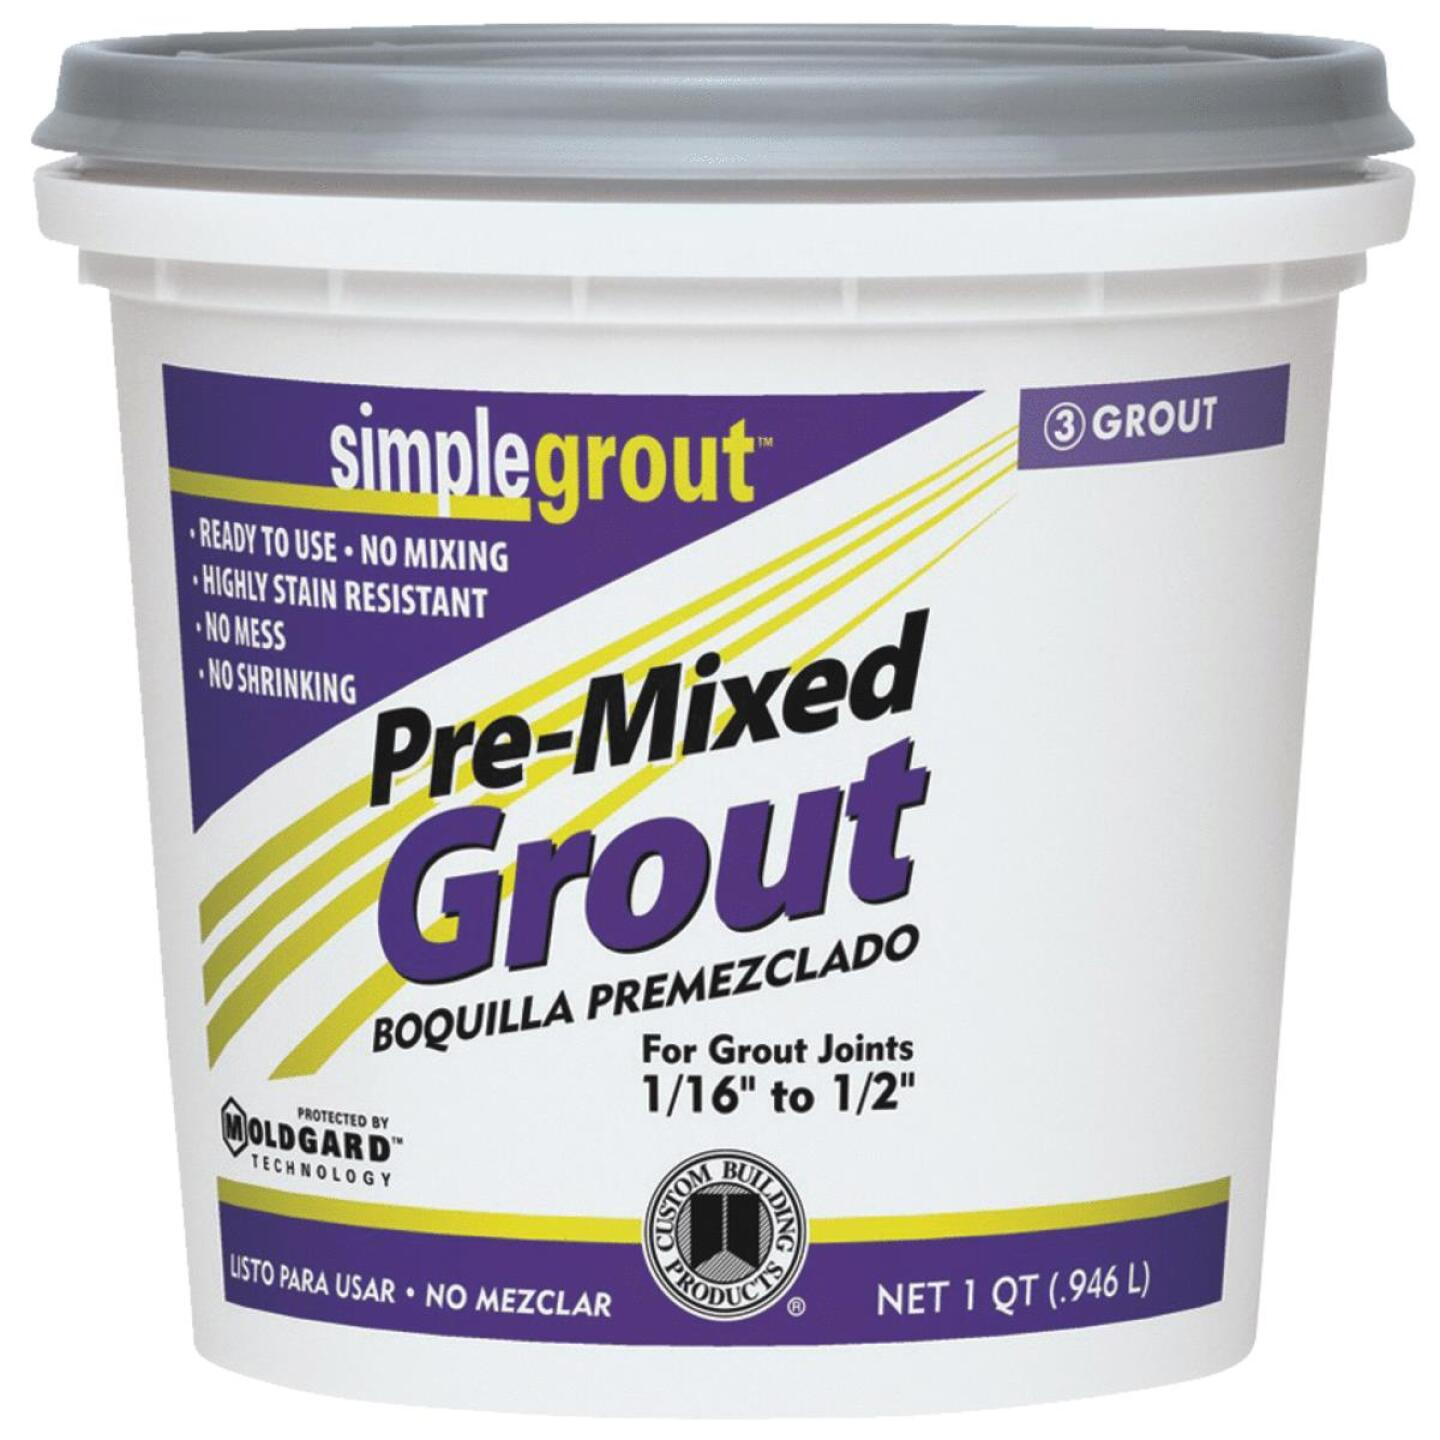 Custom Building Products Simplegrout Quart Bright White Pre-Mixed Tile Grout Image 1